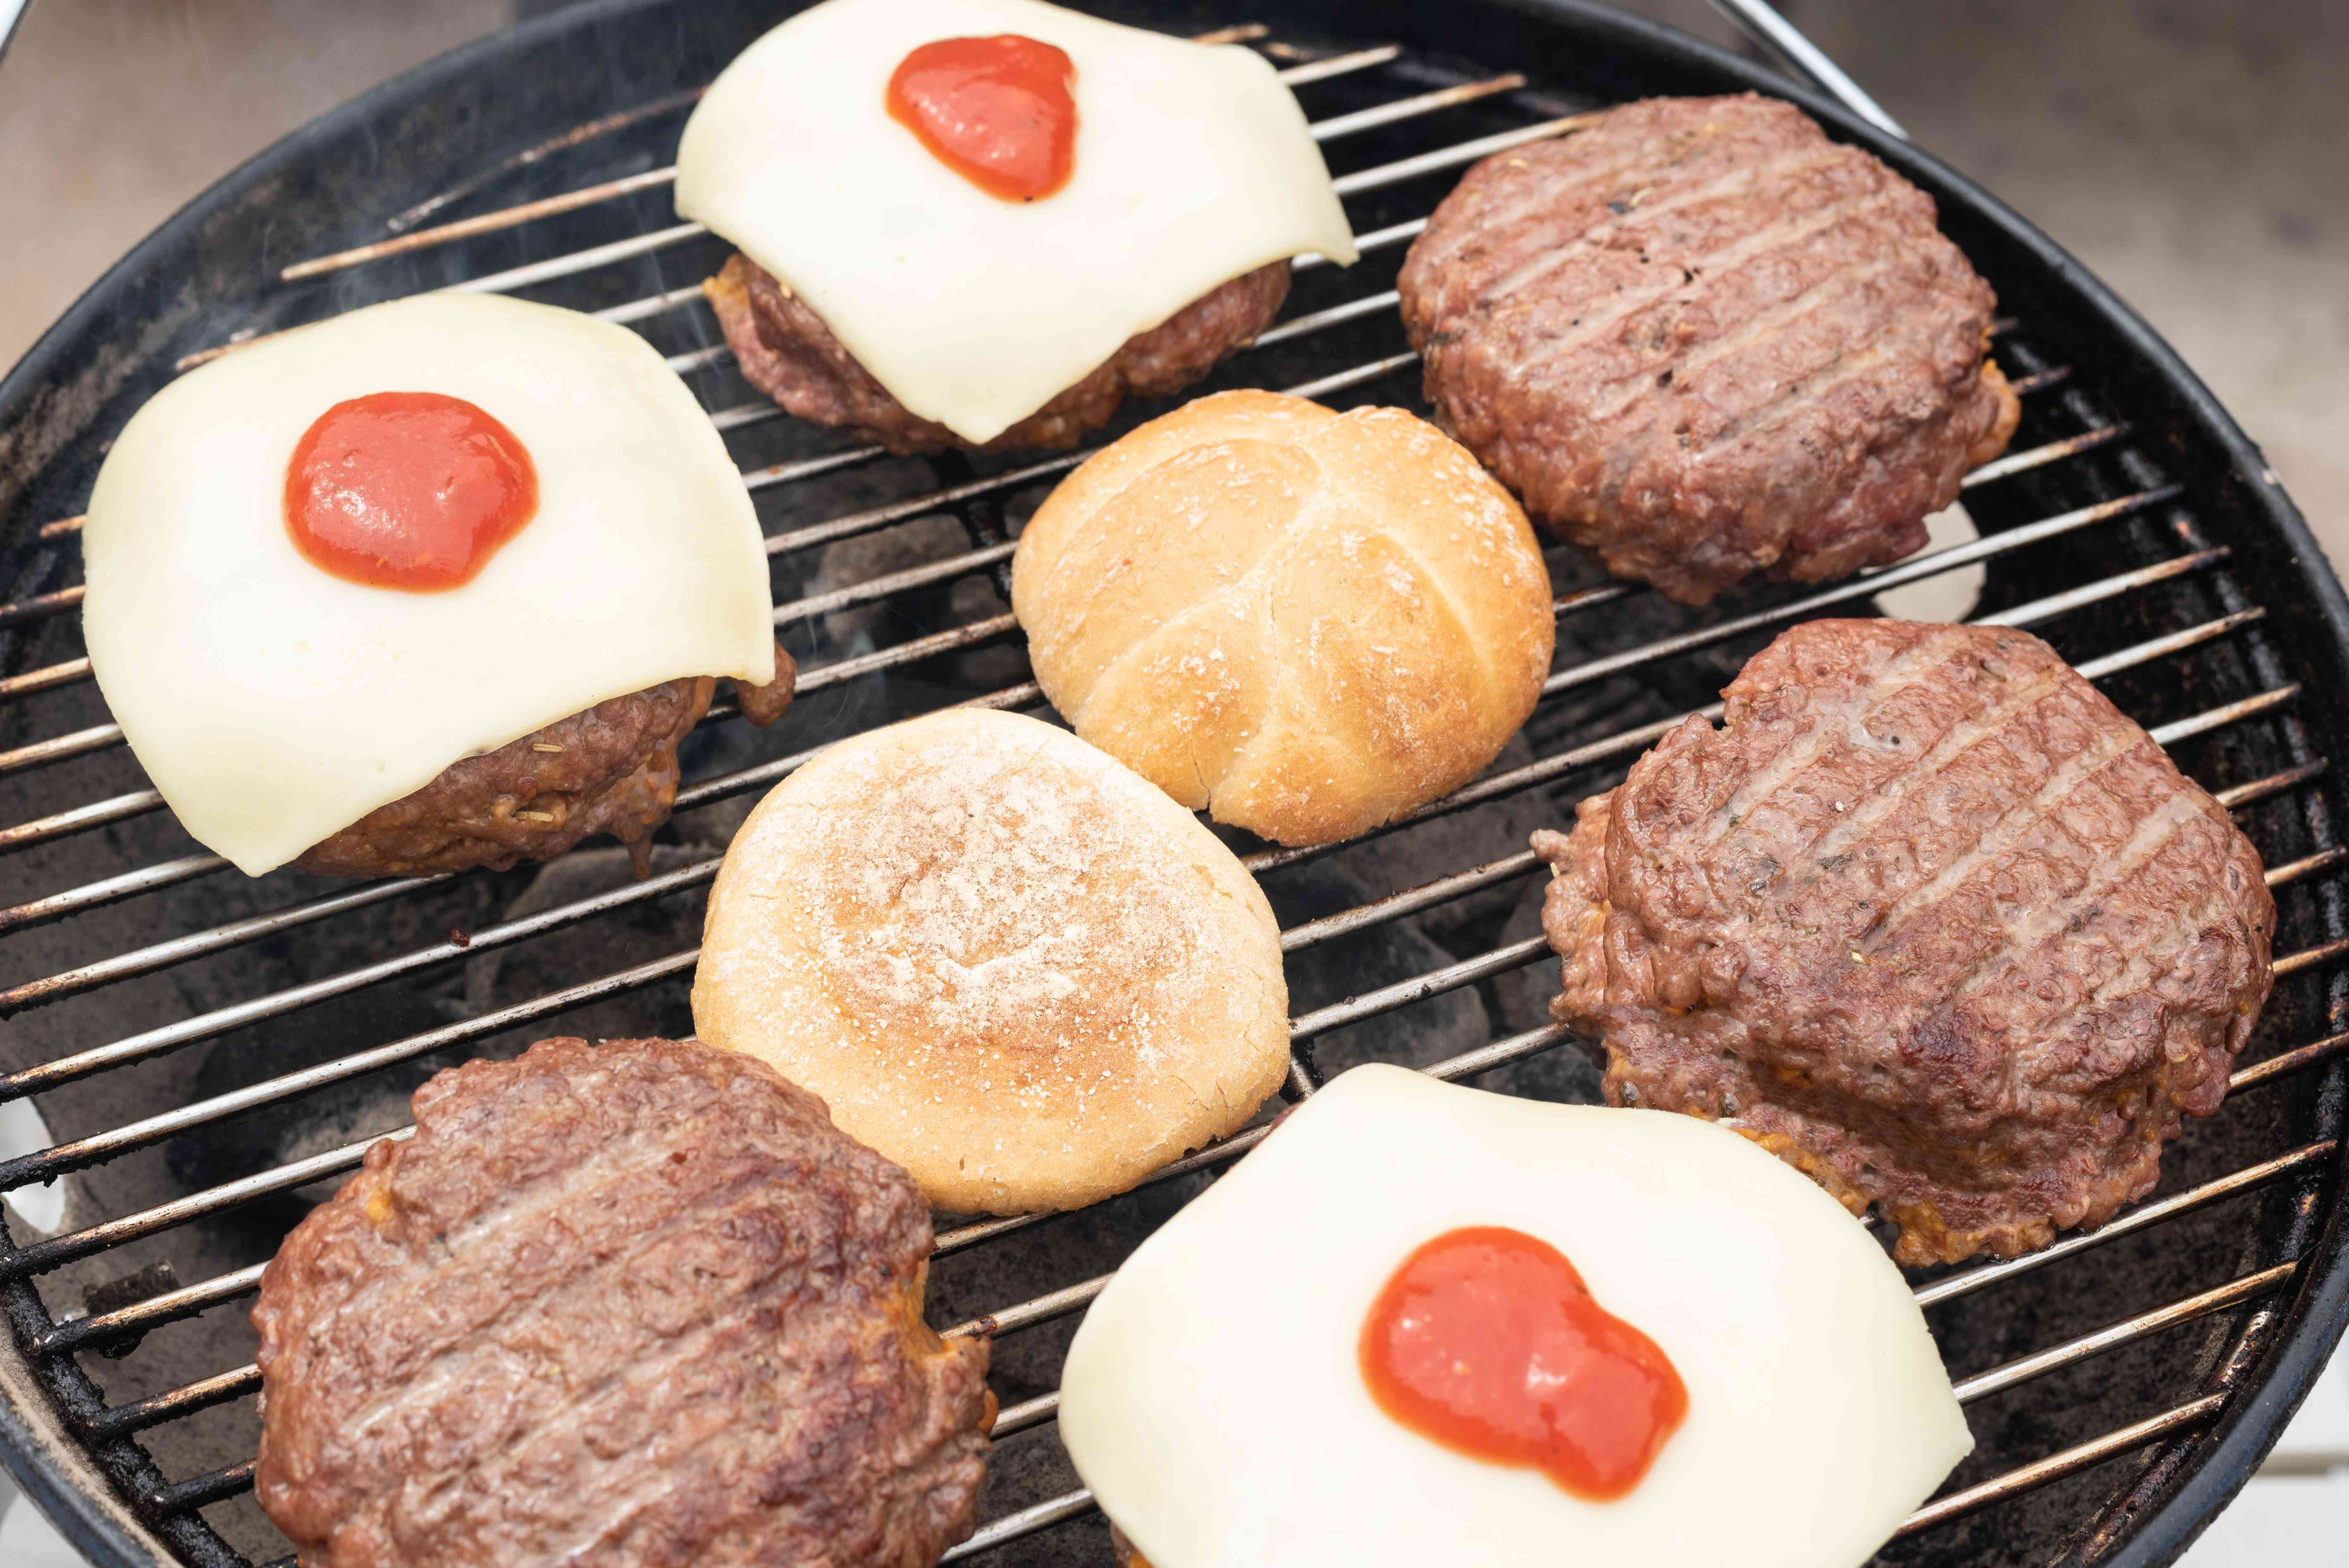 Stuffed pizza burgers on the grill with cheese